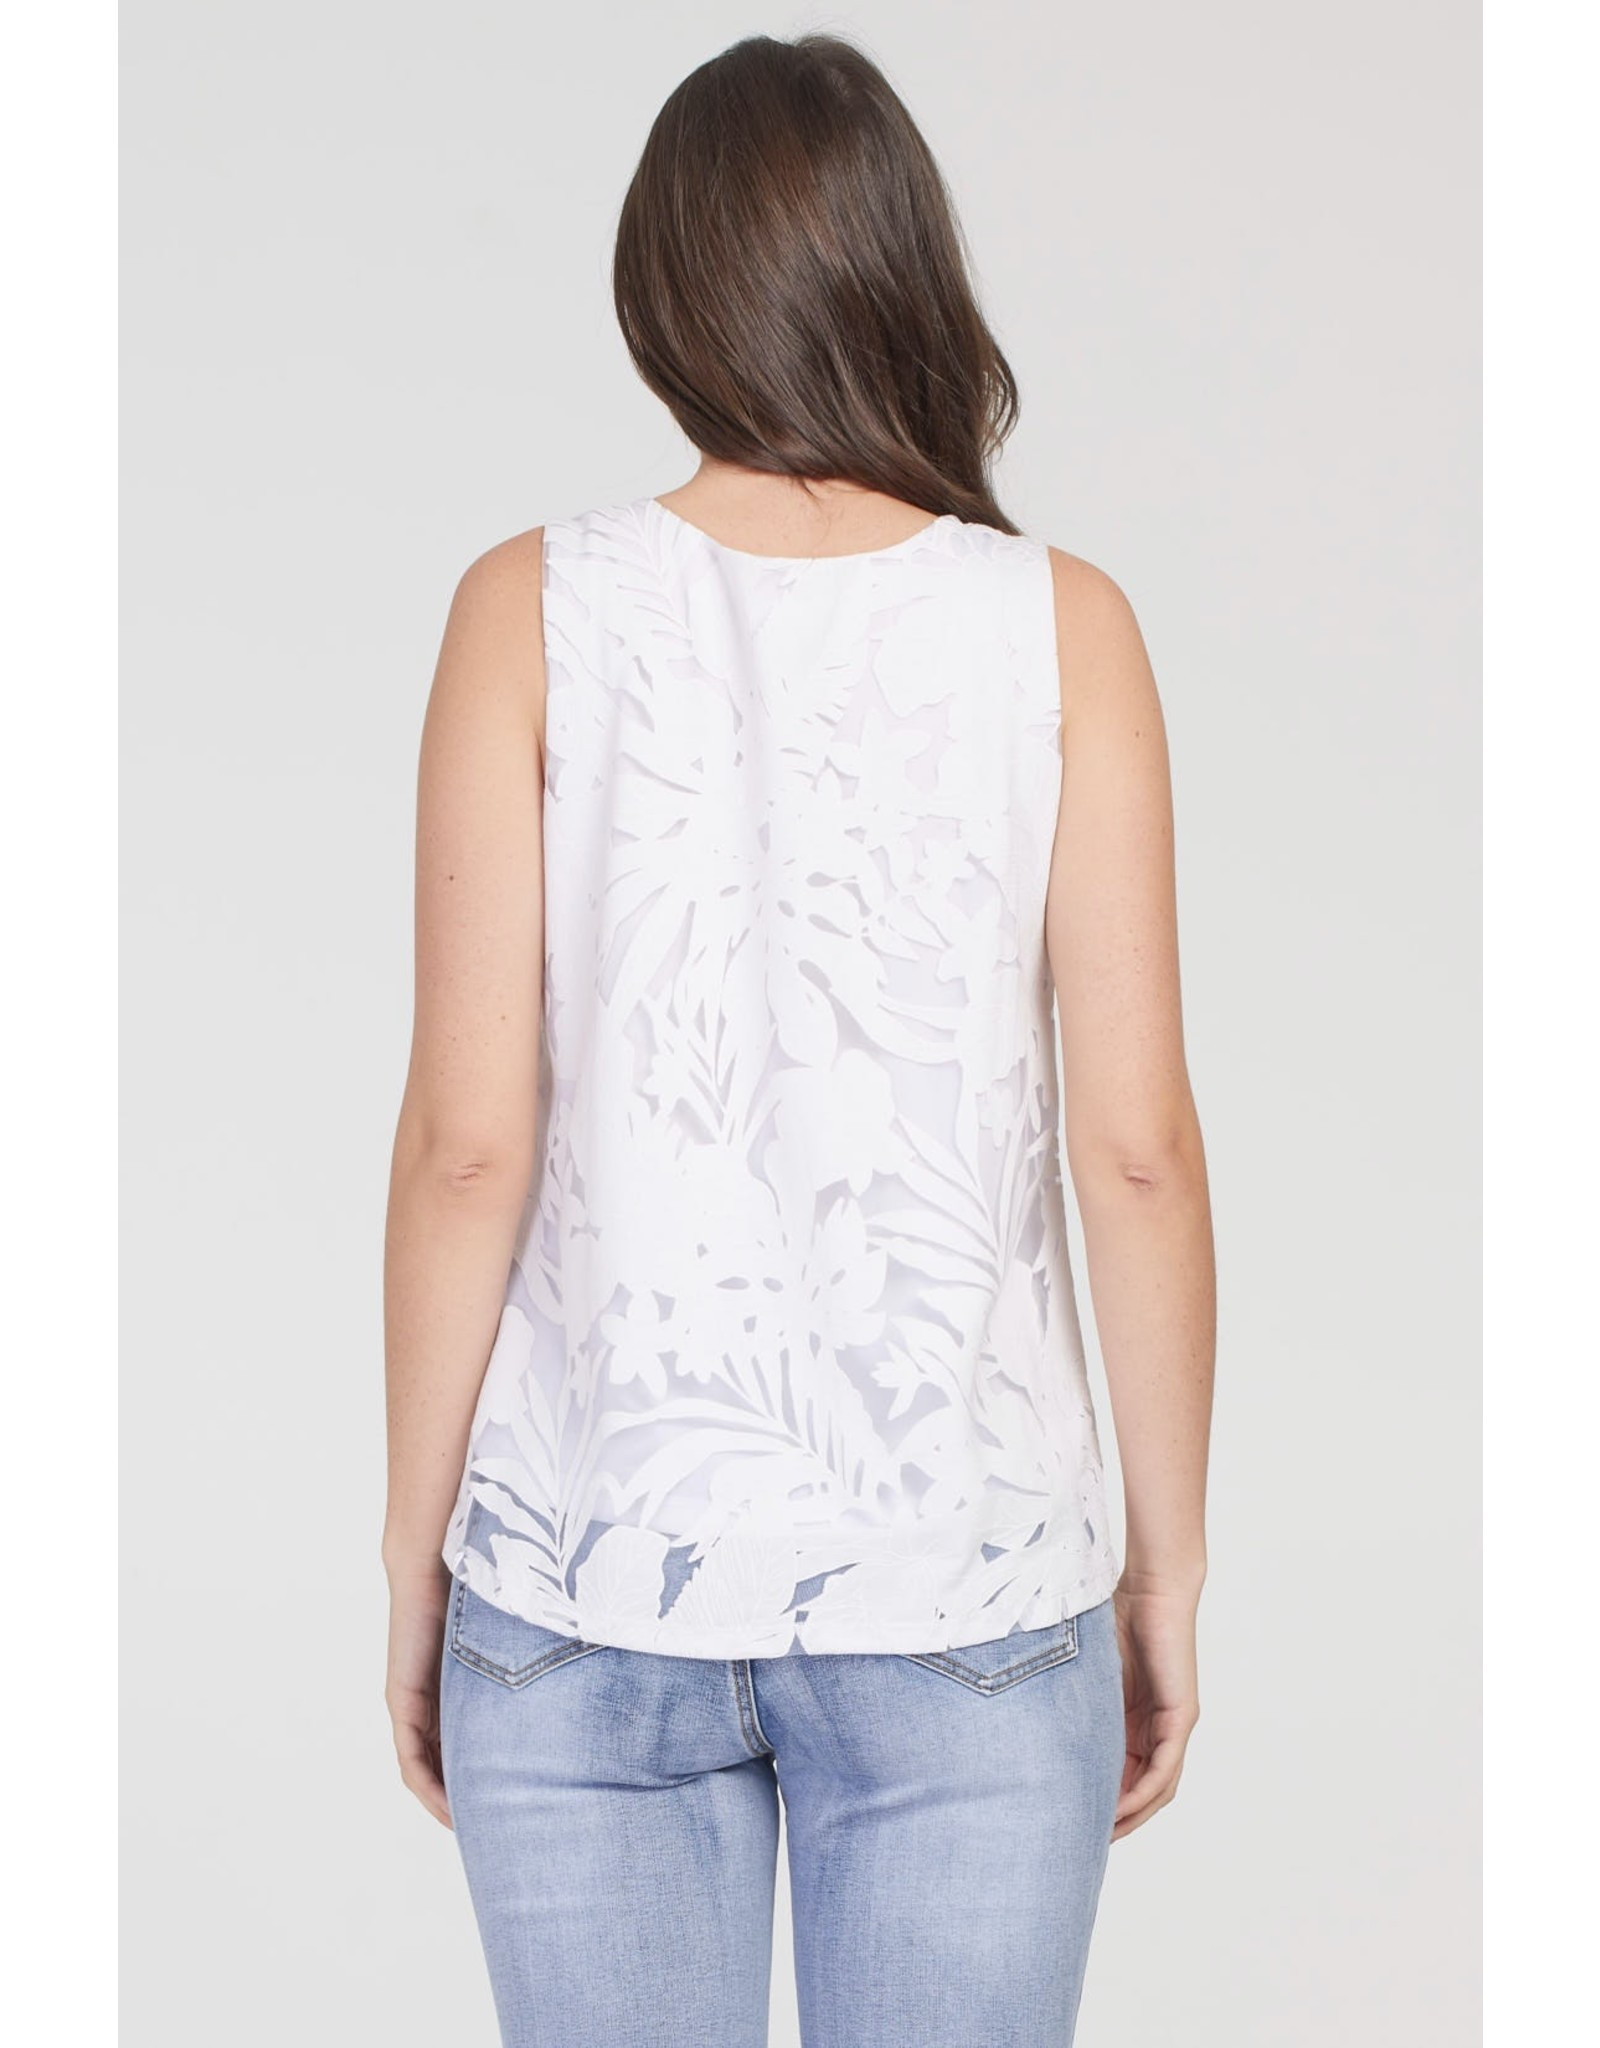 Tribal Cutwork Lace Overlay Top 69060